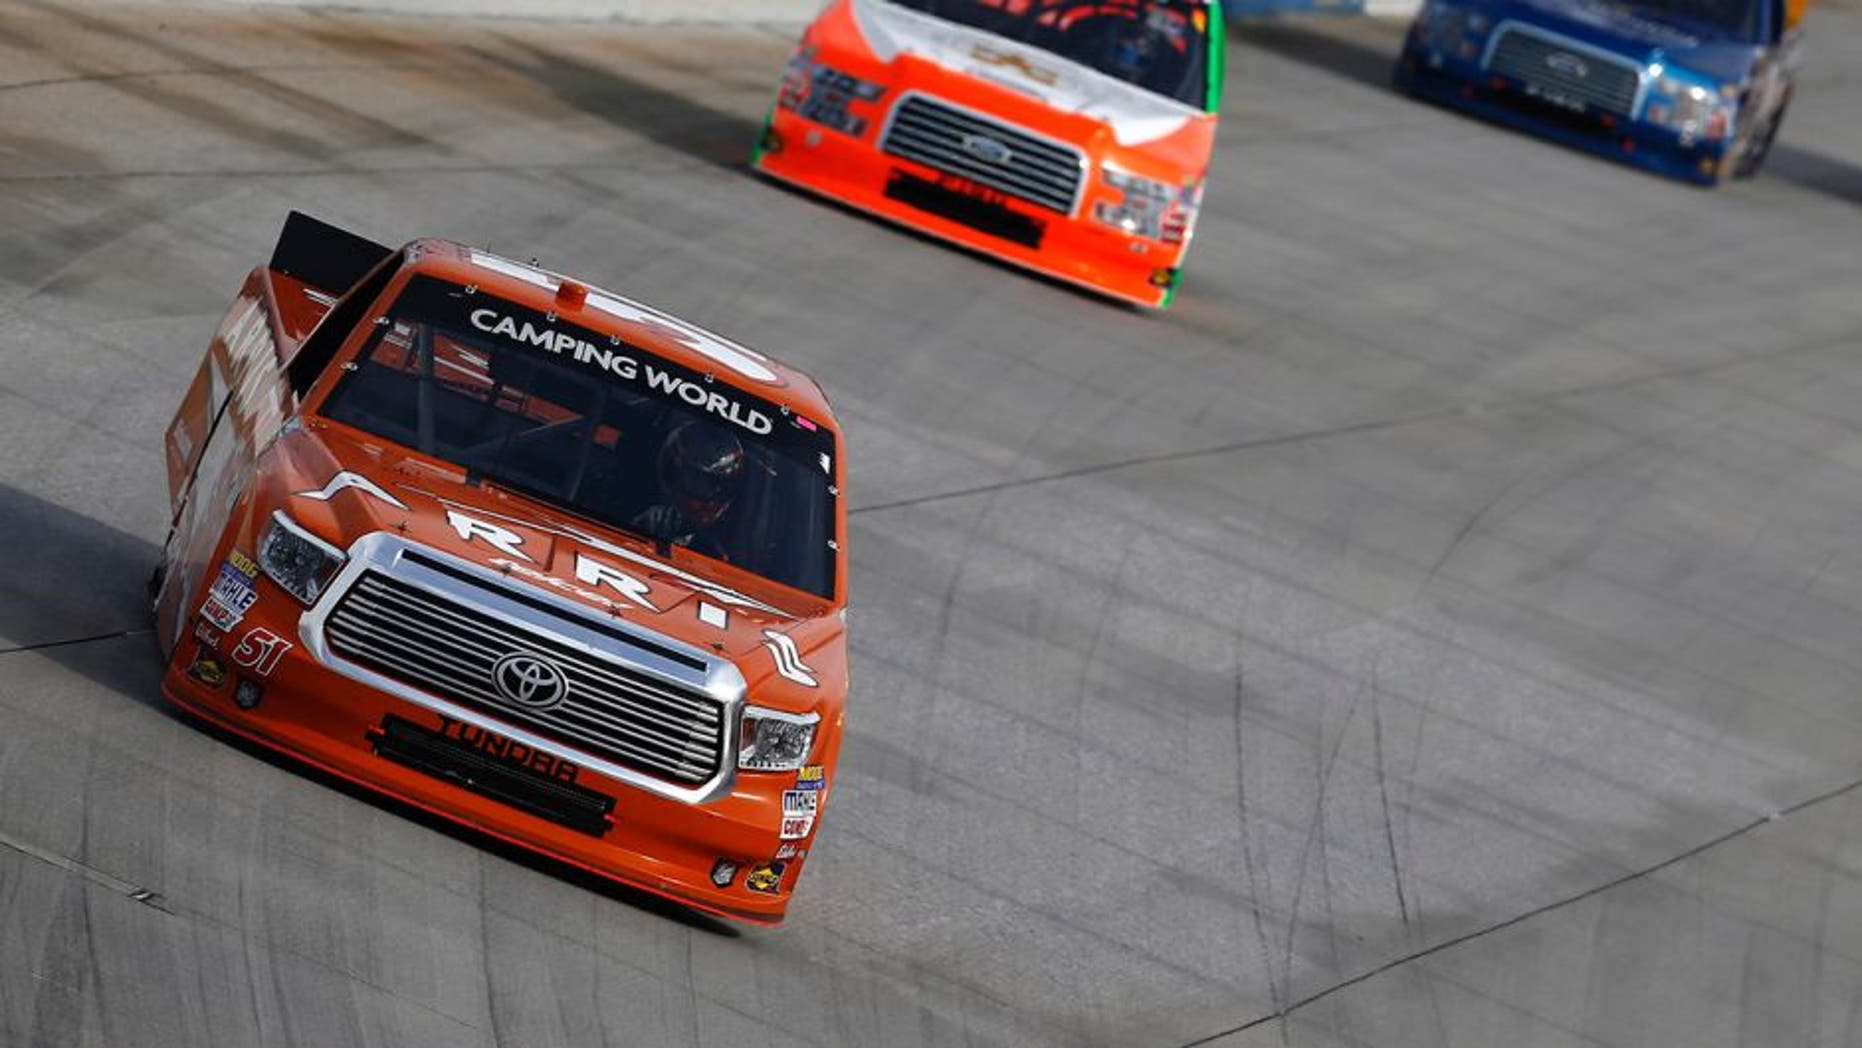 DOVER, DE - MAY 13: Daniel Suarez, driver of the #51 ARRIS Toyota, leads a pack of trucks during the NASCAR Camping World Truck Series JACOB Companies 200 at Dover International Speedway on May 13, 2016 in Dover, Delaware. (Photo by Jeff Zelevansky/NASCAR via Getty Images)